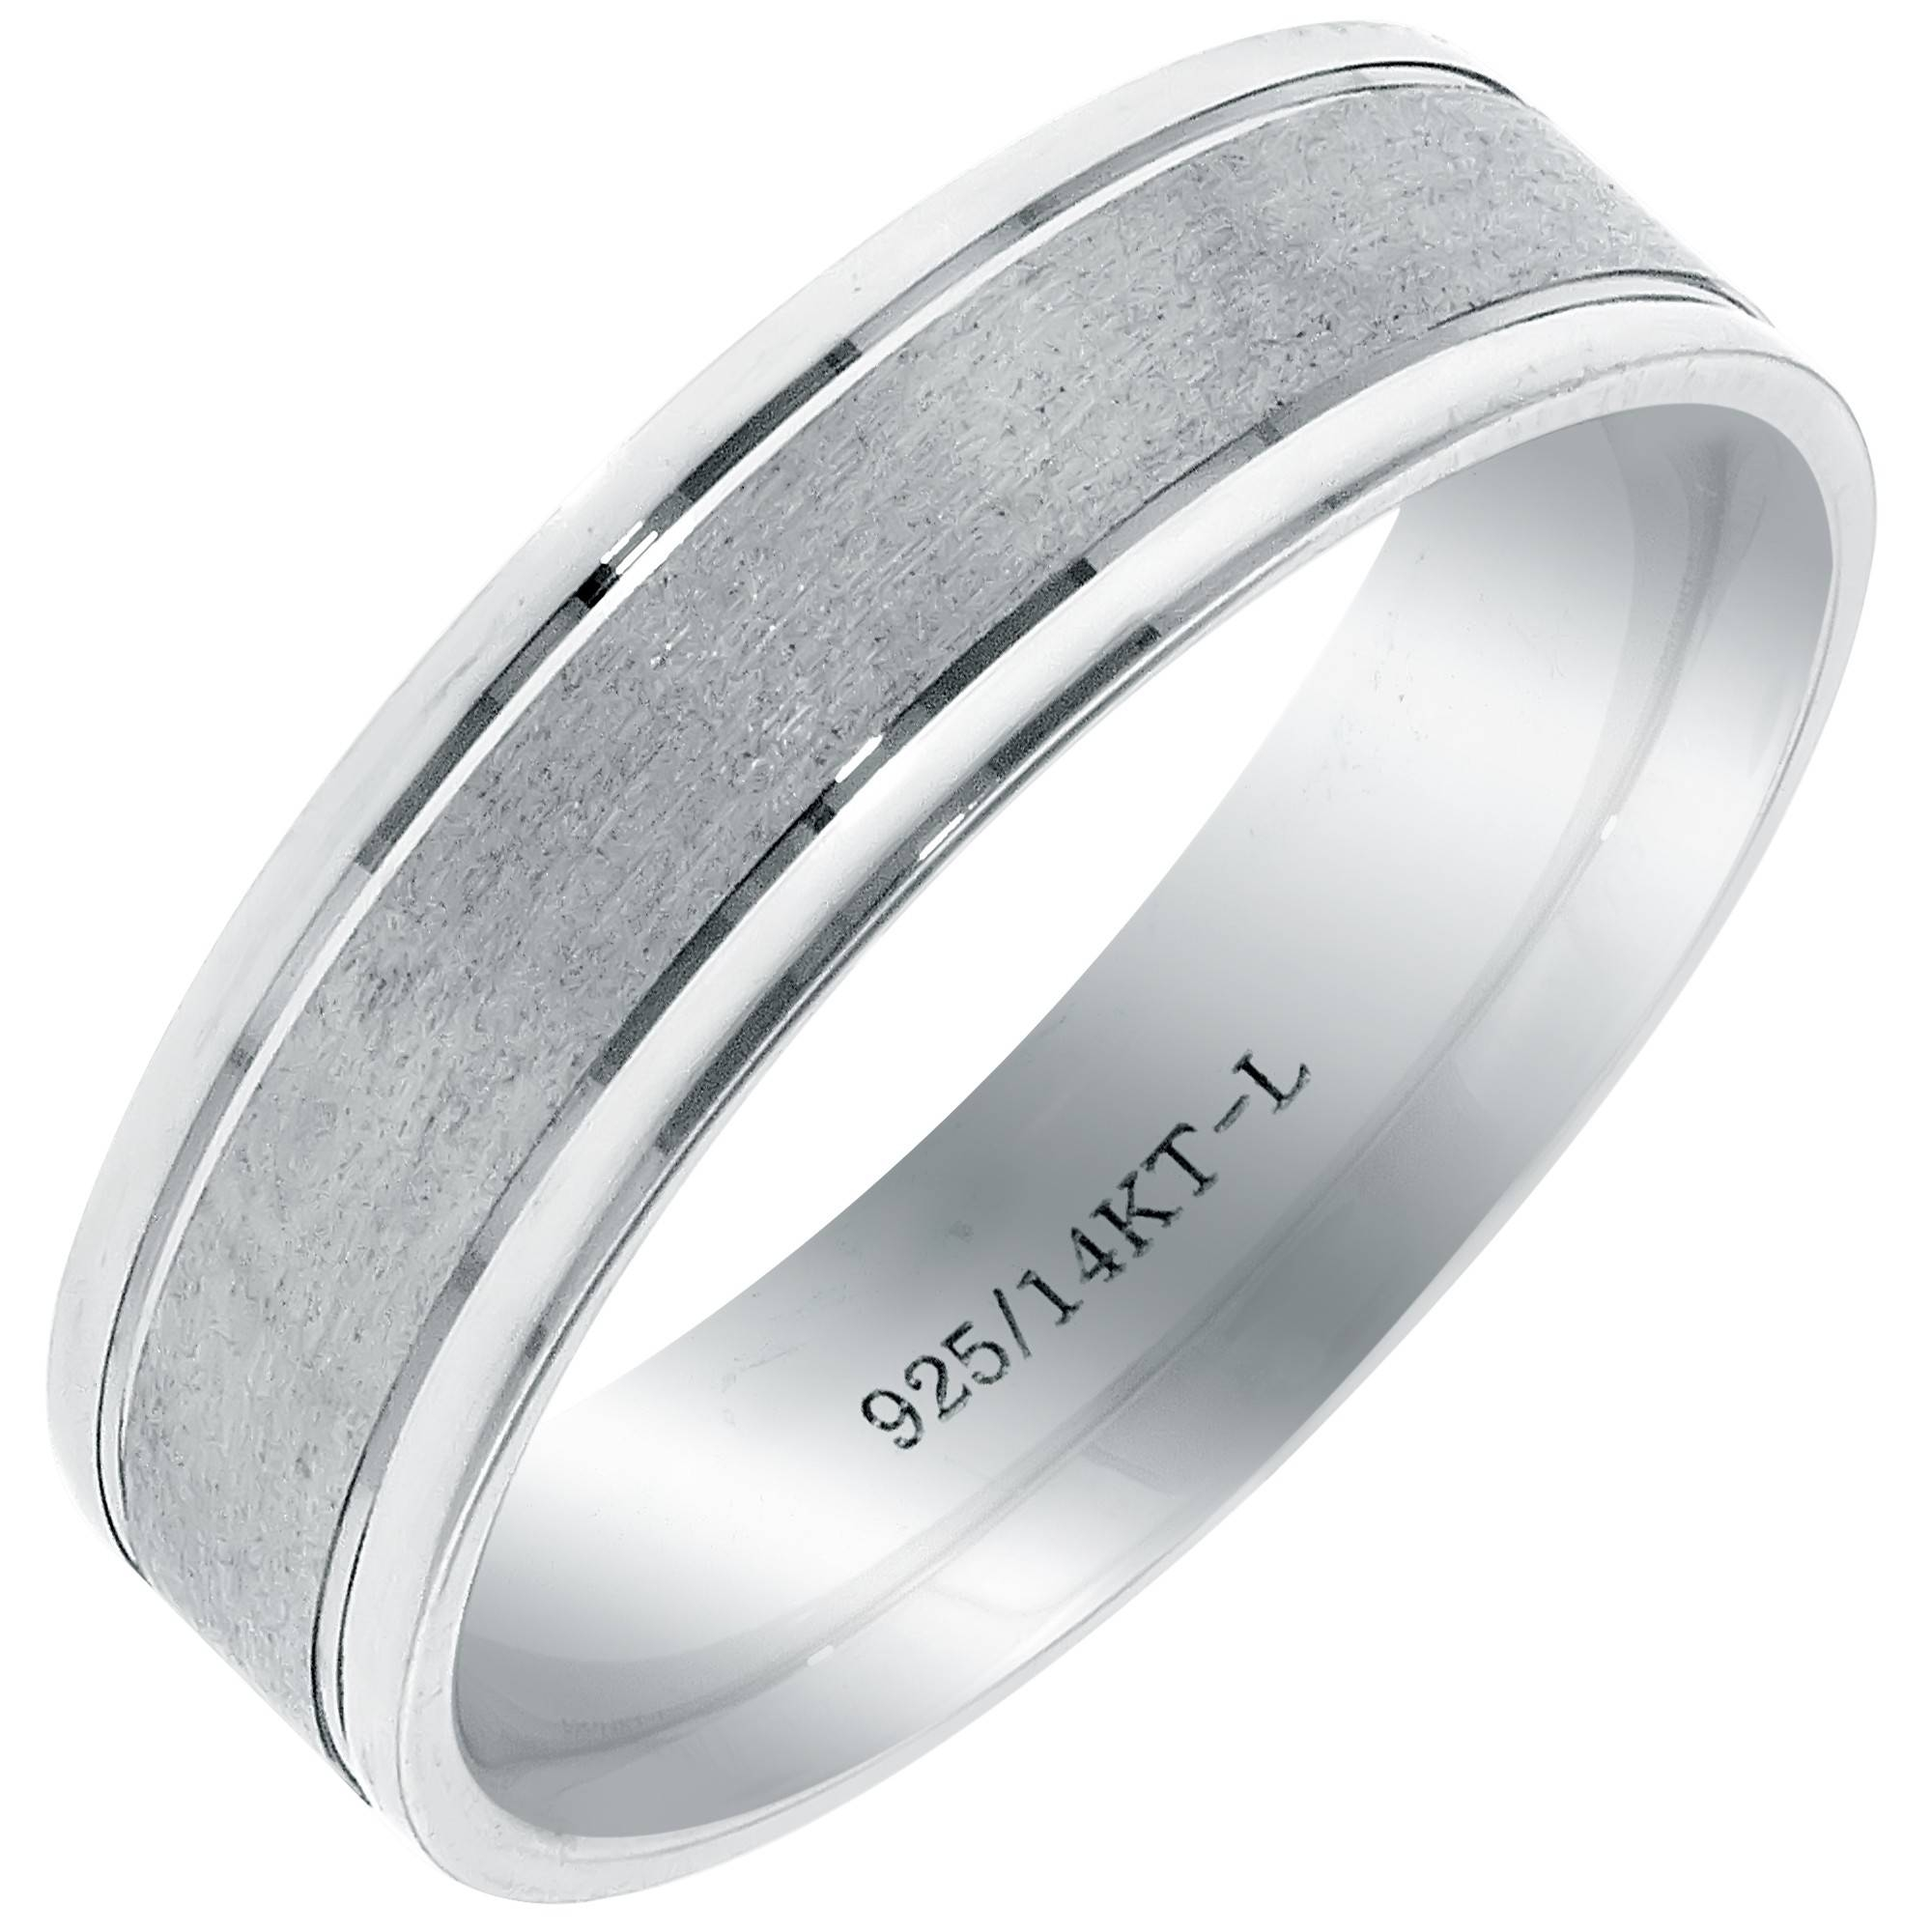 Bond2 Mens Wedding Band In 14Kt White Gold And Sterling Silver (6Mm) Regarding Silver Mens Engagement Rings (View 3 of 15)